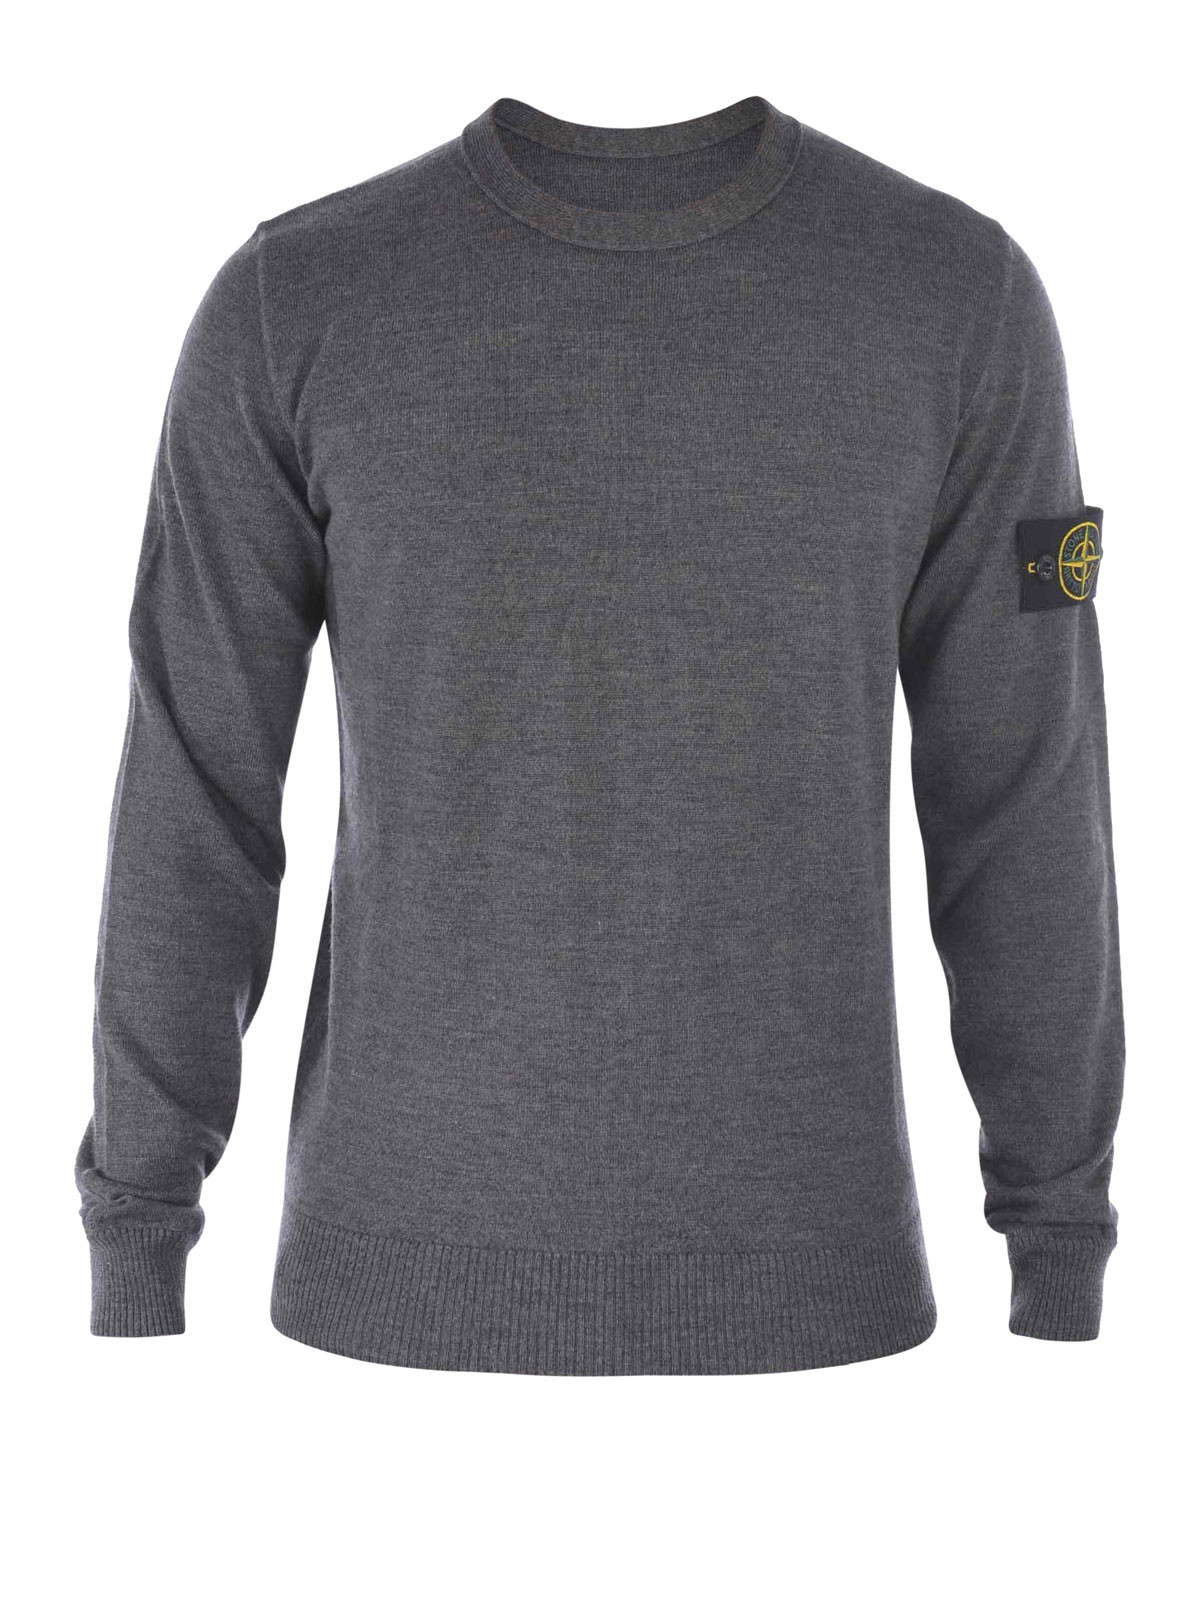 crew neck pullover by stone island crew necks shop online at 50bc4 v0067. Black Bedroom Furniture Sets. Home Design Ideas